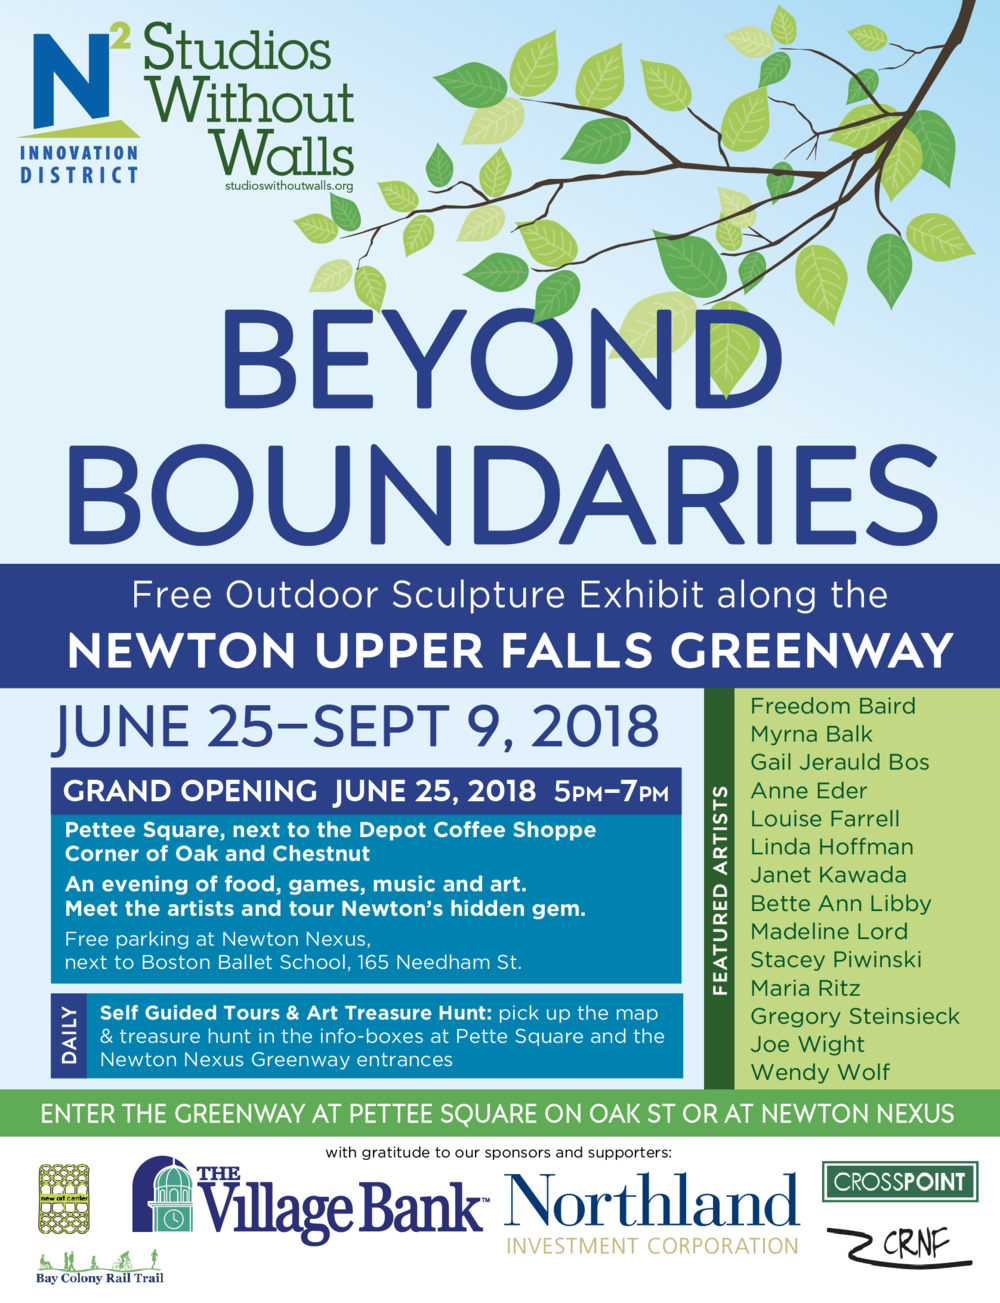 Beyond Boundaries at the Newton Upper Falls Greenway